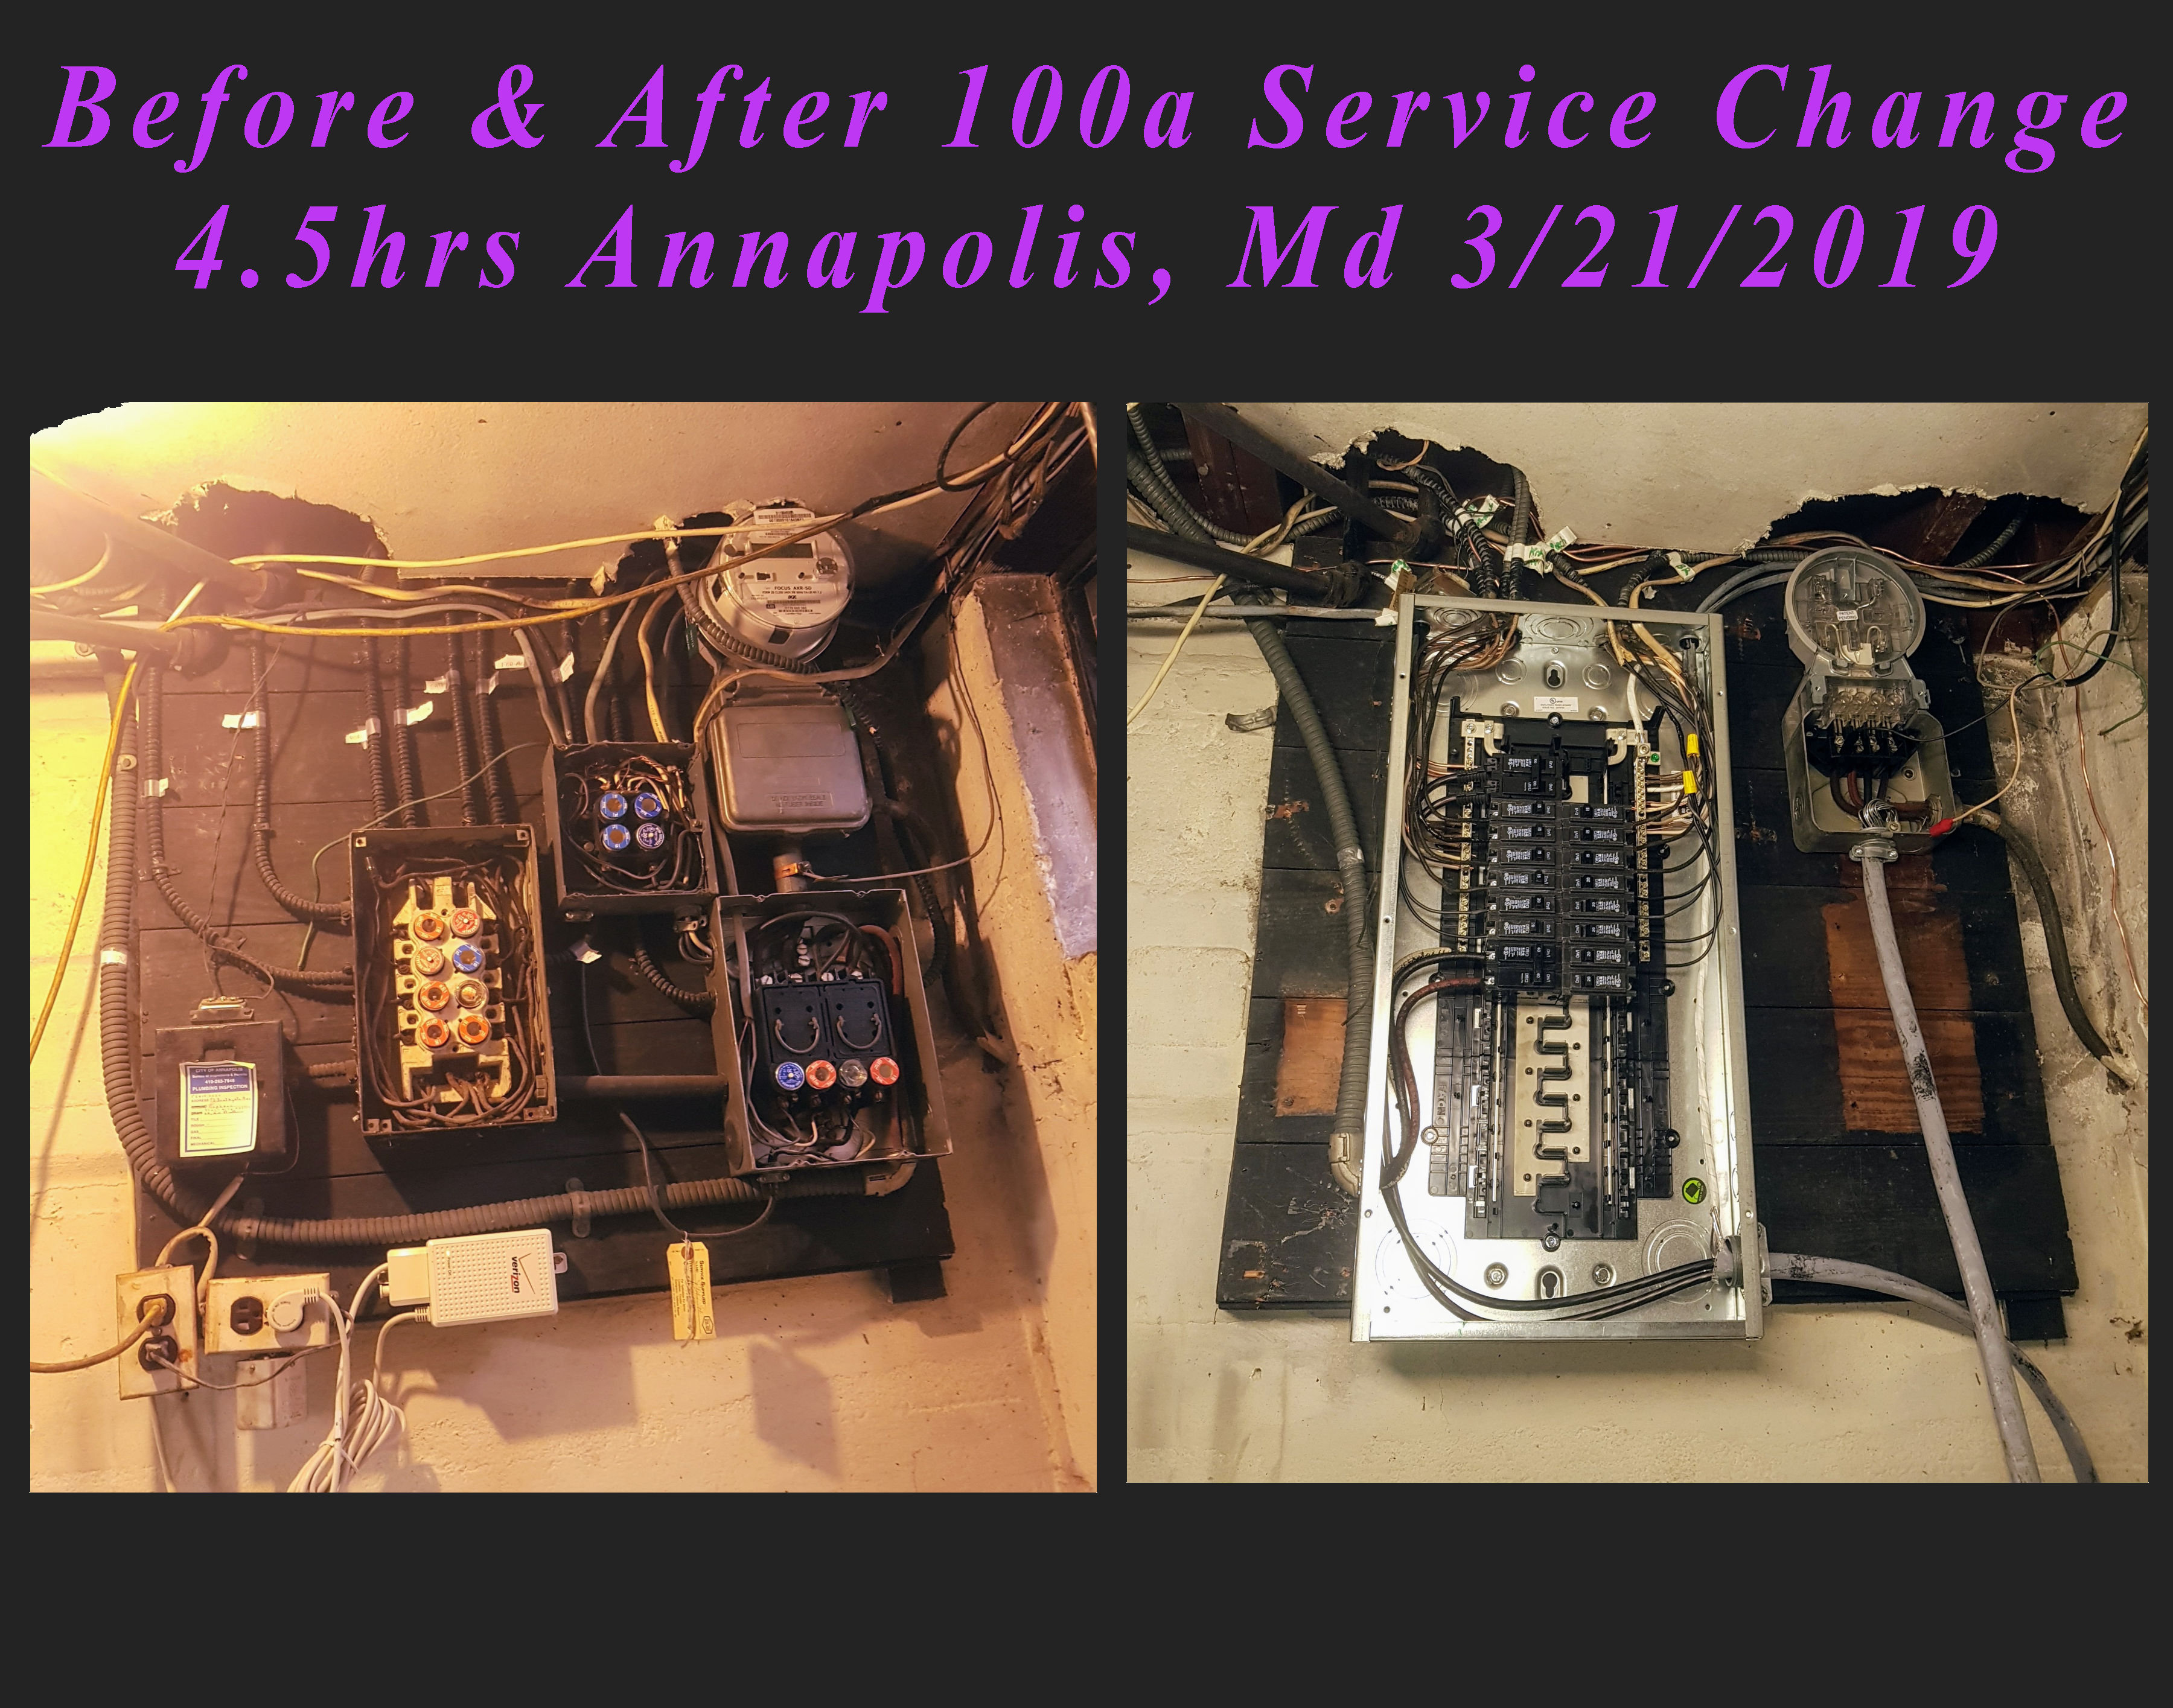 Before & After 100a